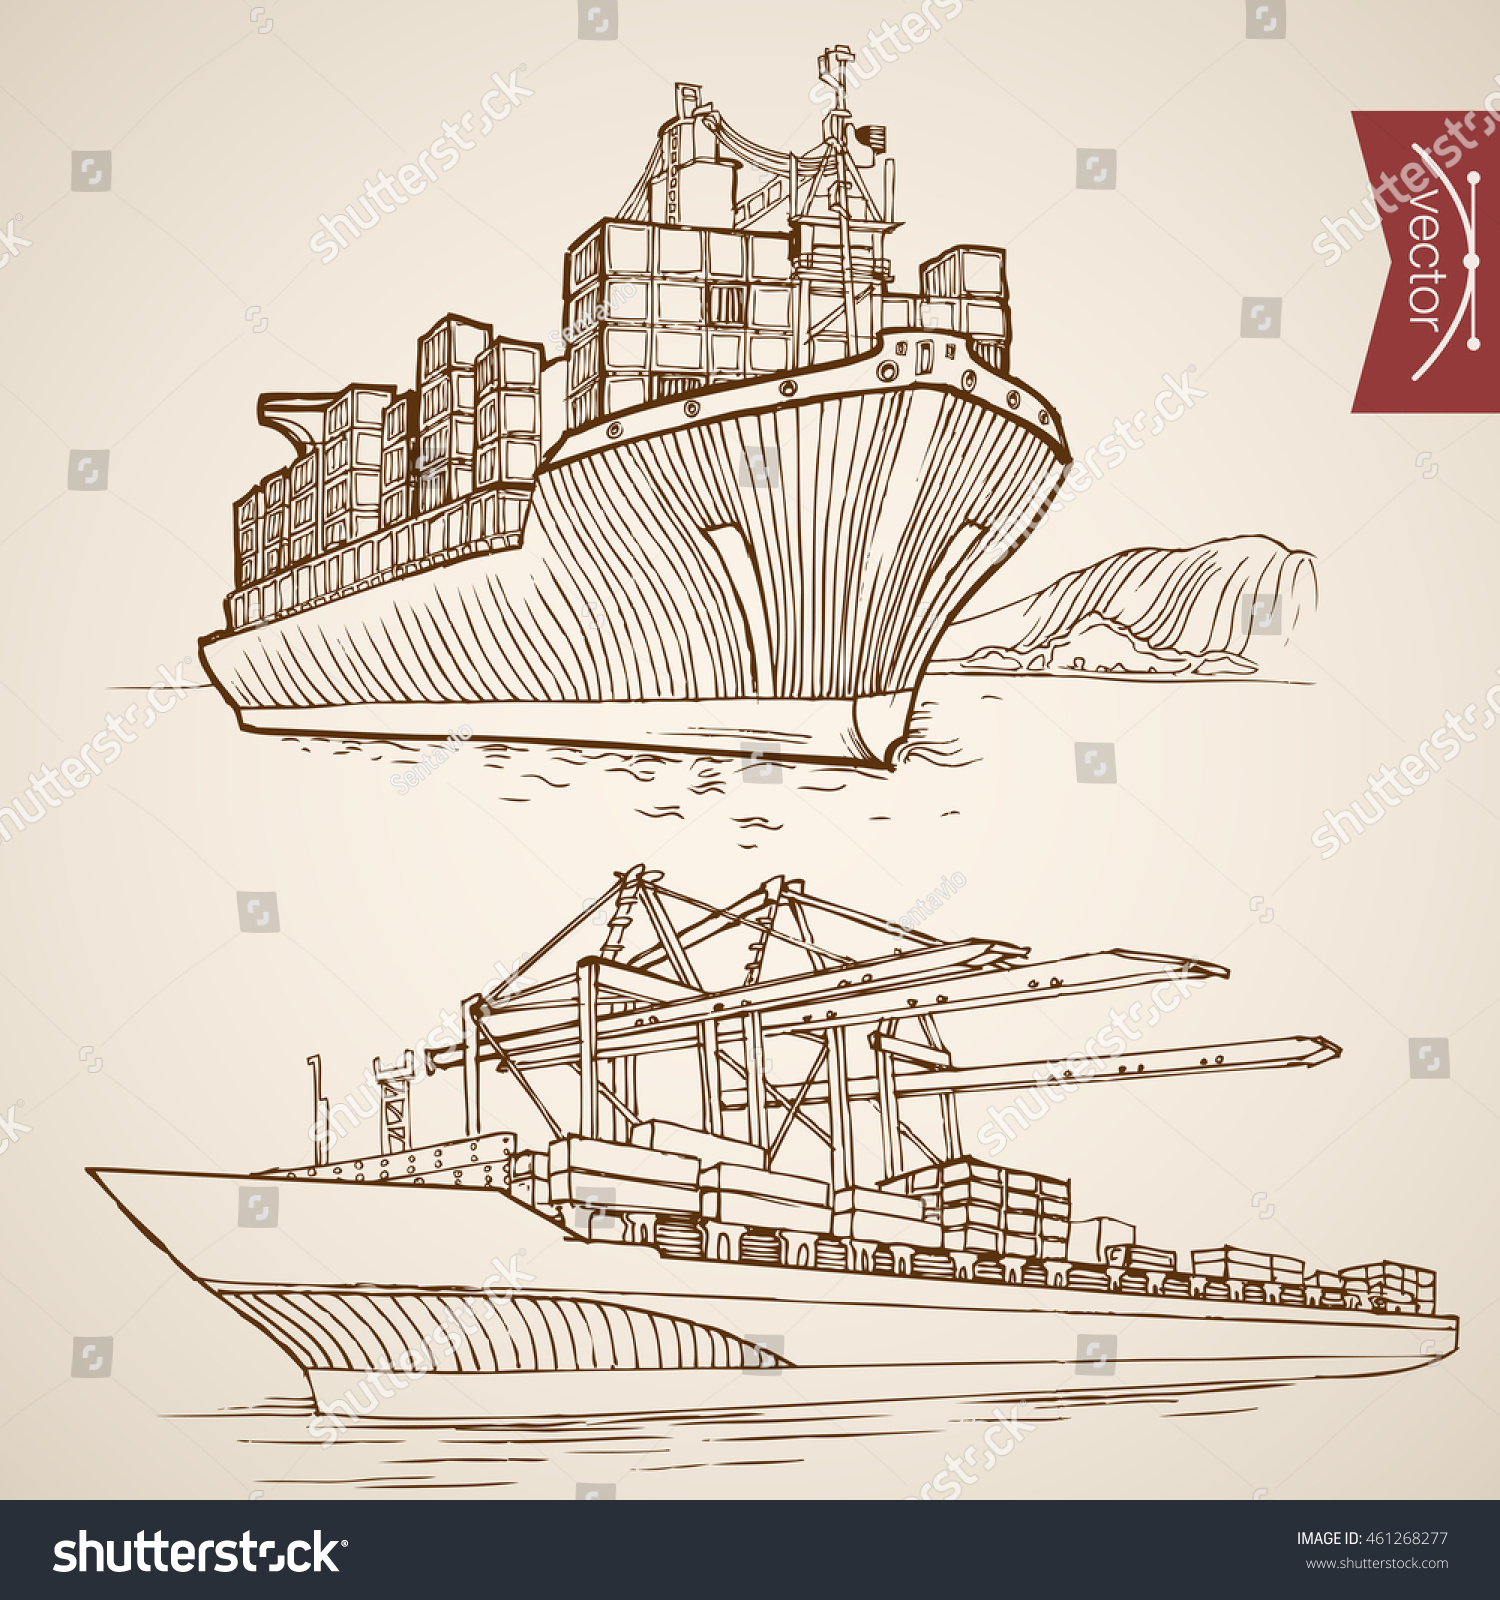 Engraving vintage hand drawn vector ship stock vector royalty free